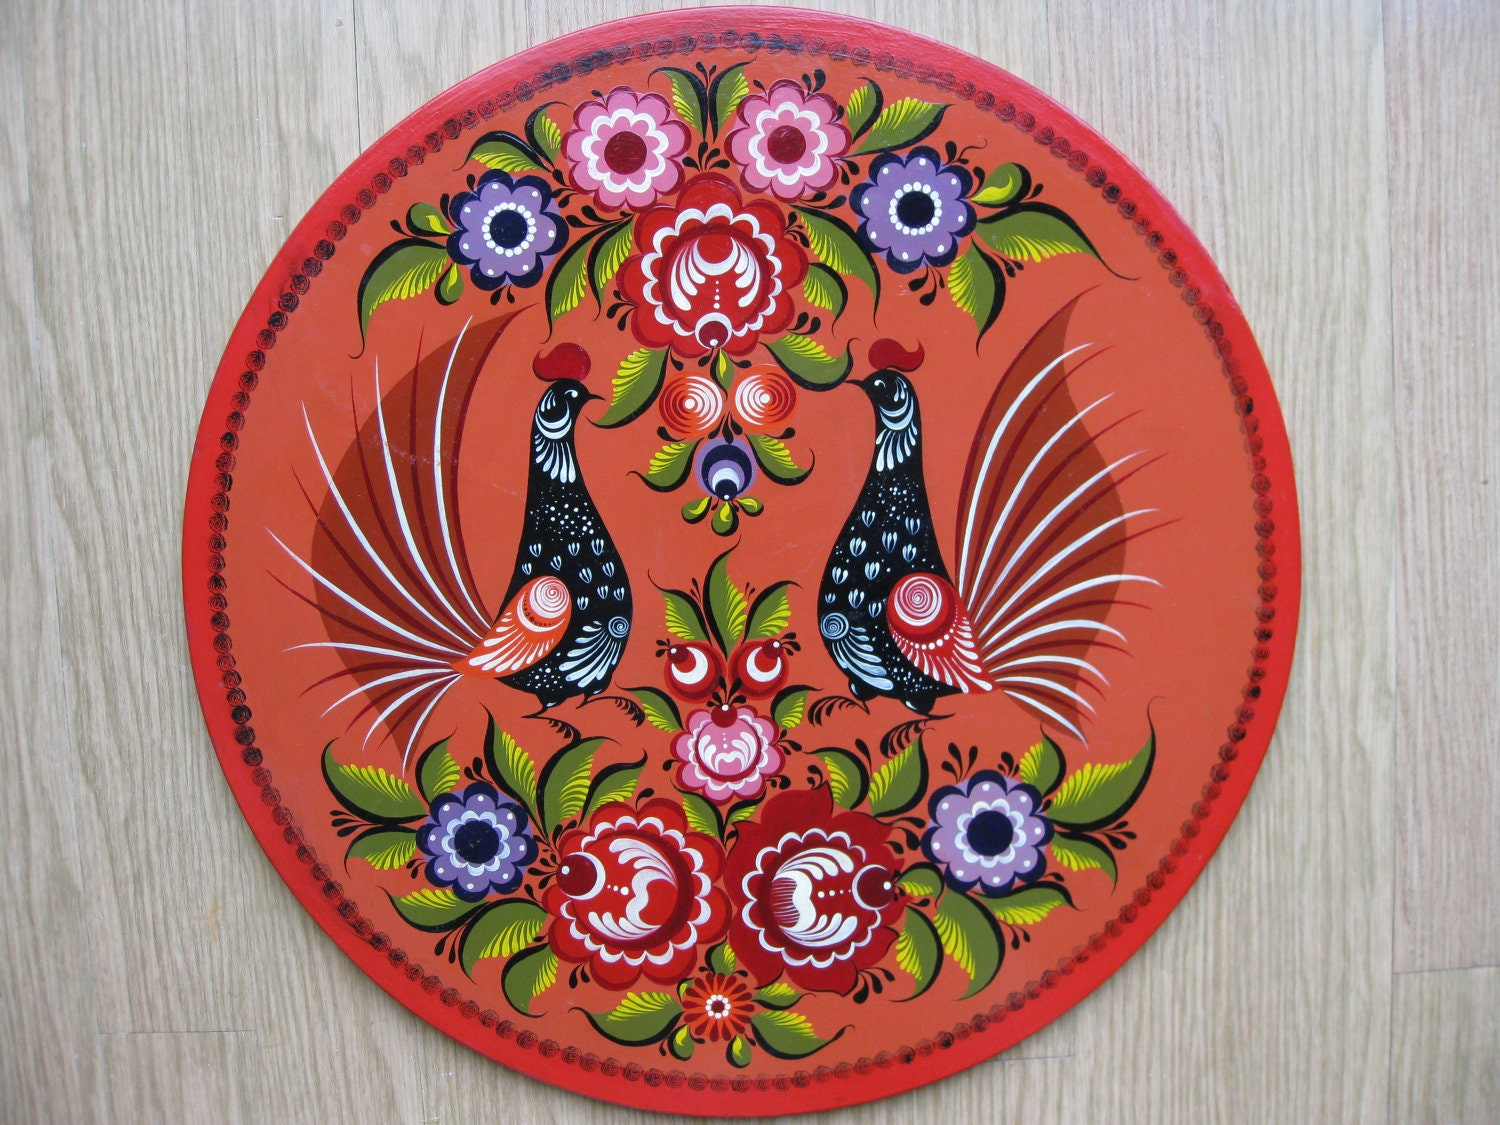 Wall Decor -Russian Folk Art - Gorodets painting - Vintage Big Wall Plate -Russian folk art -Wall Decor -Russian Style -Decorative Painting